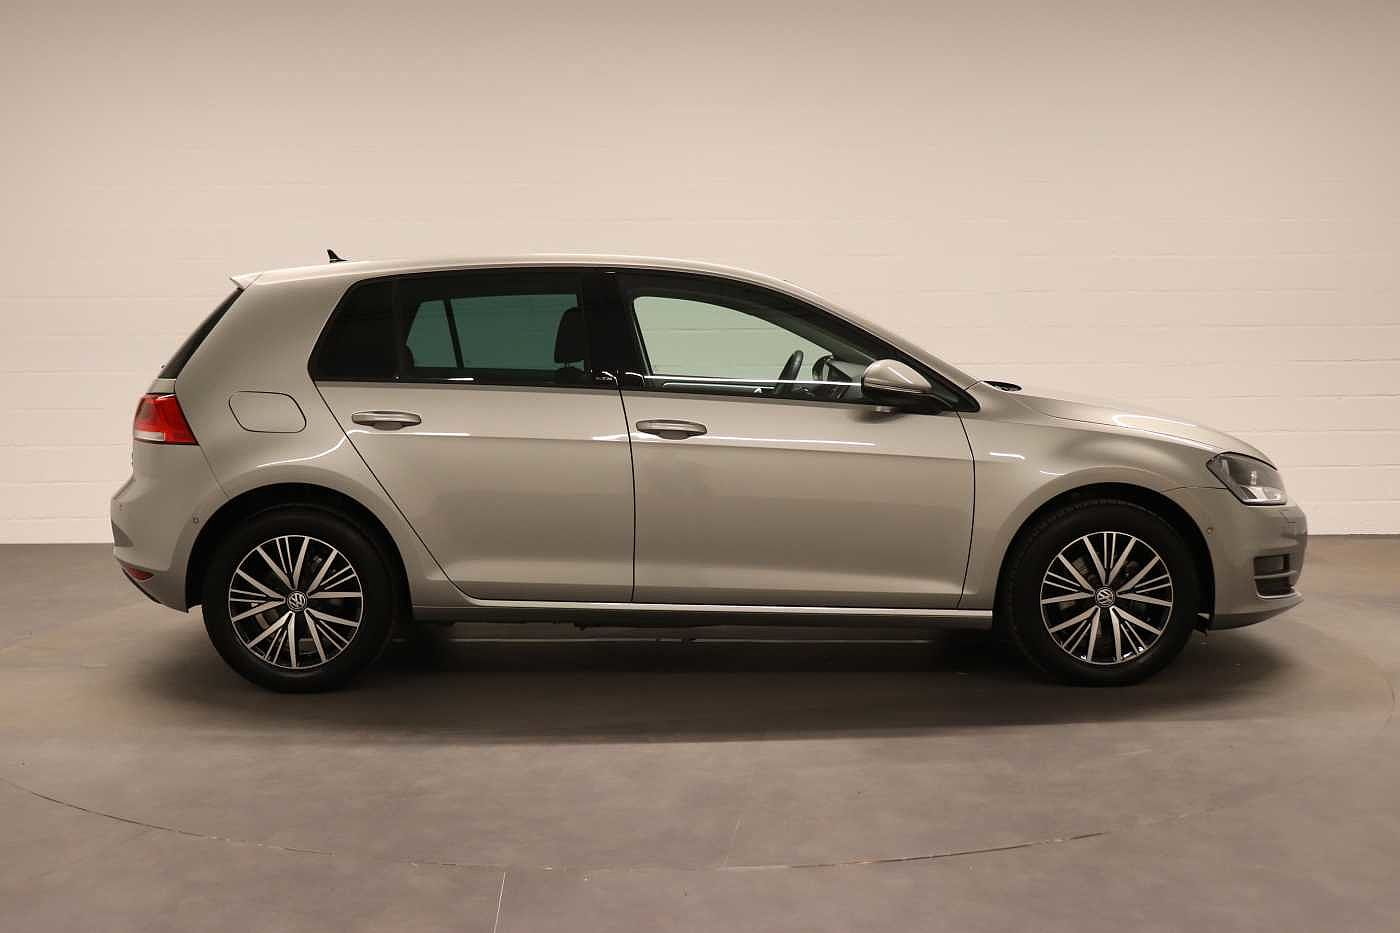 Volkswagen Golf 1.6TDI - photo 7